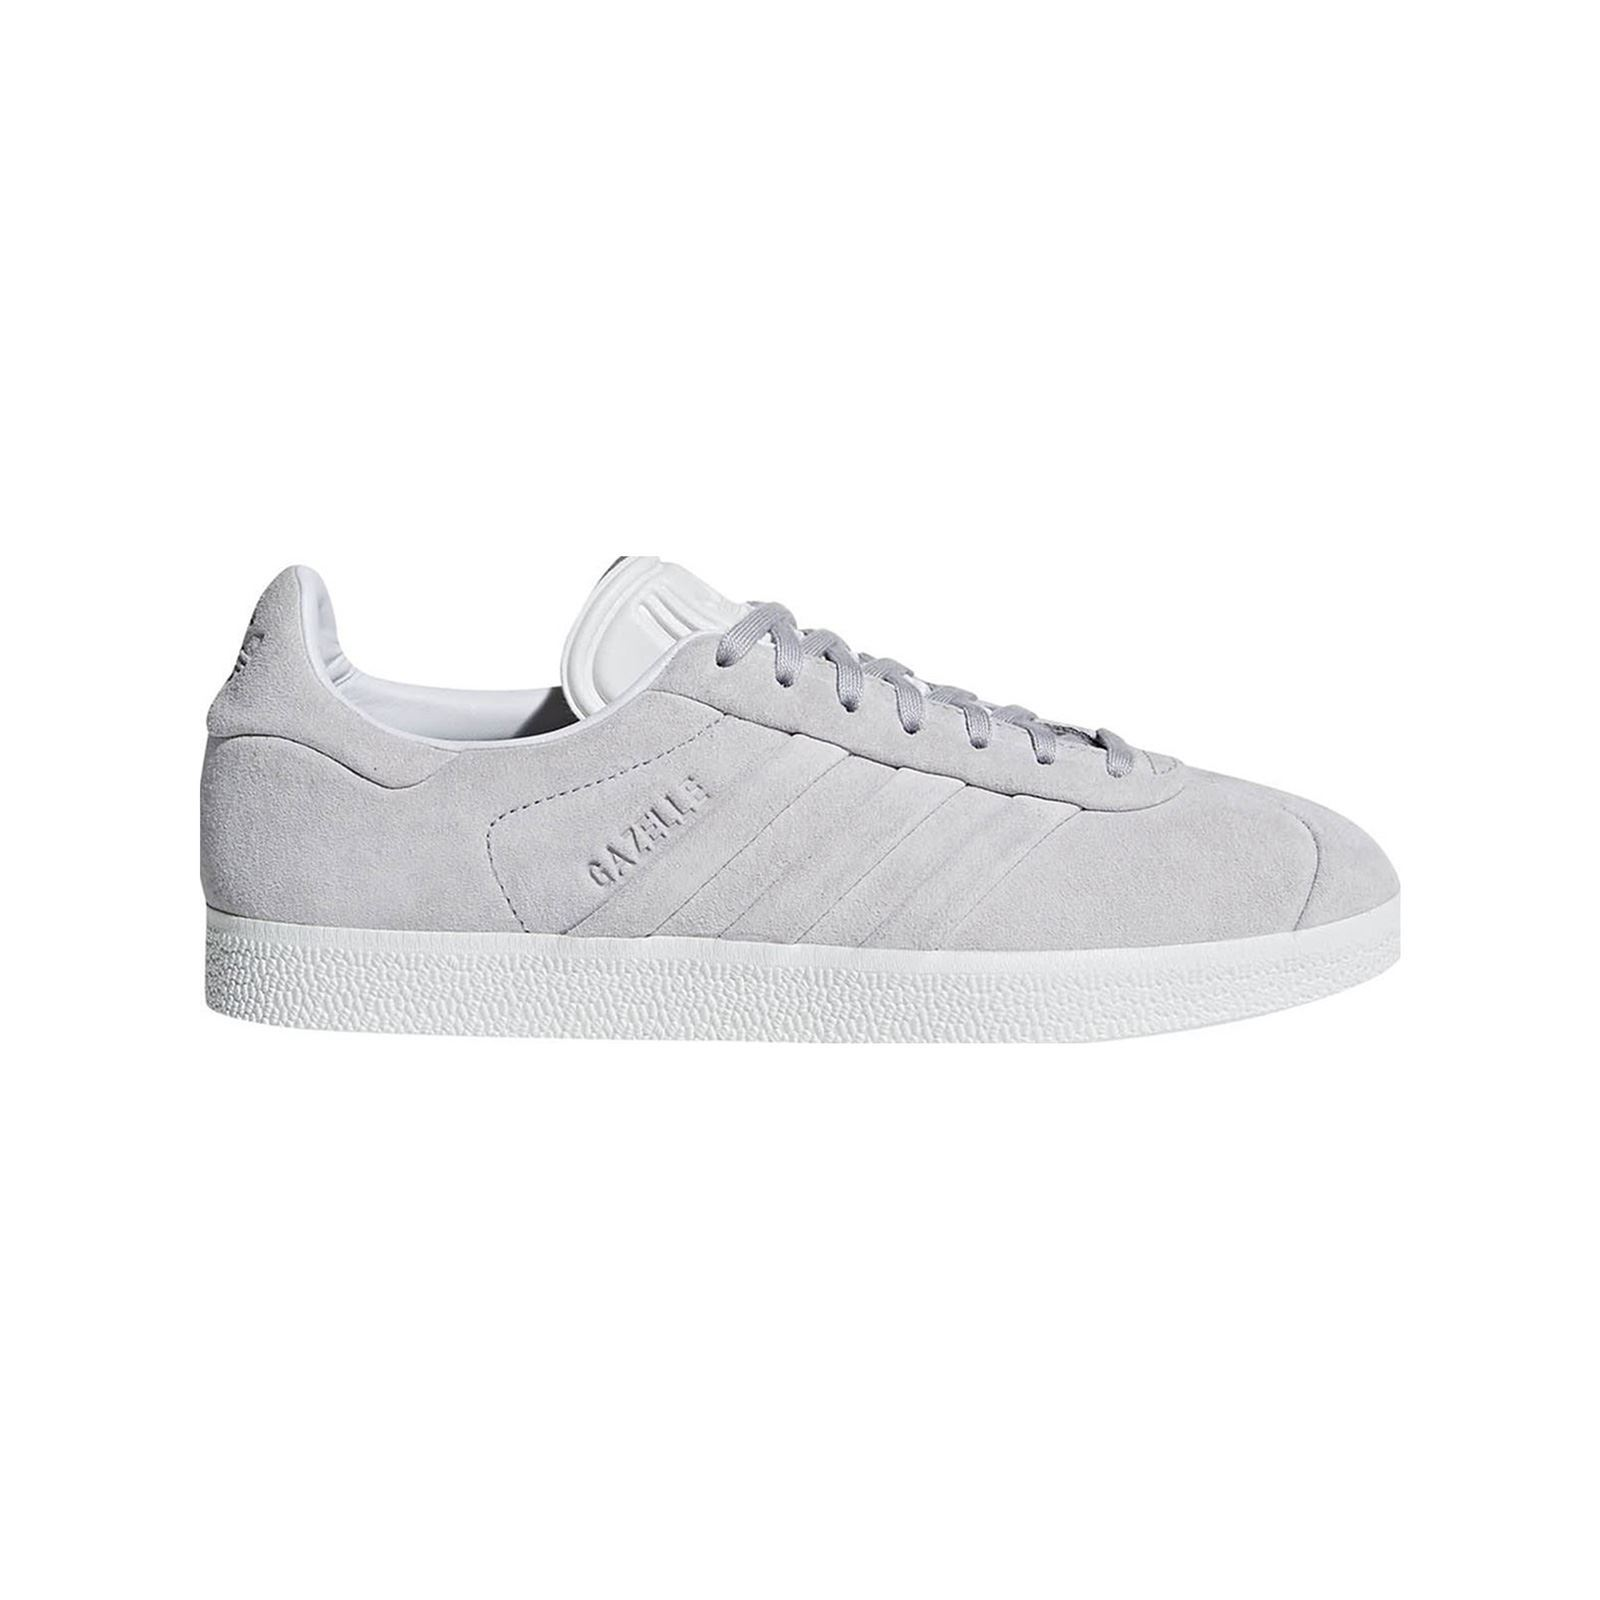 hot sale online e7f3a 310ef ADIDAS ORIGINALS Gazelle Stitch And Turn - Zapatillas de cuero - gris claro